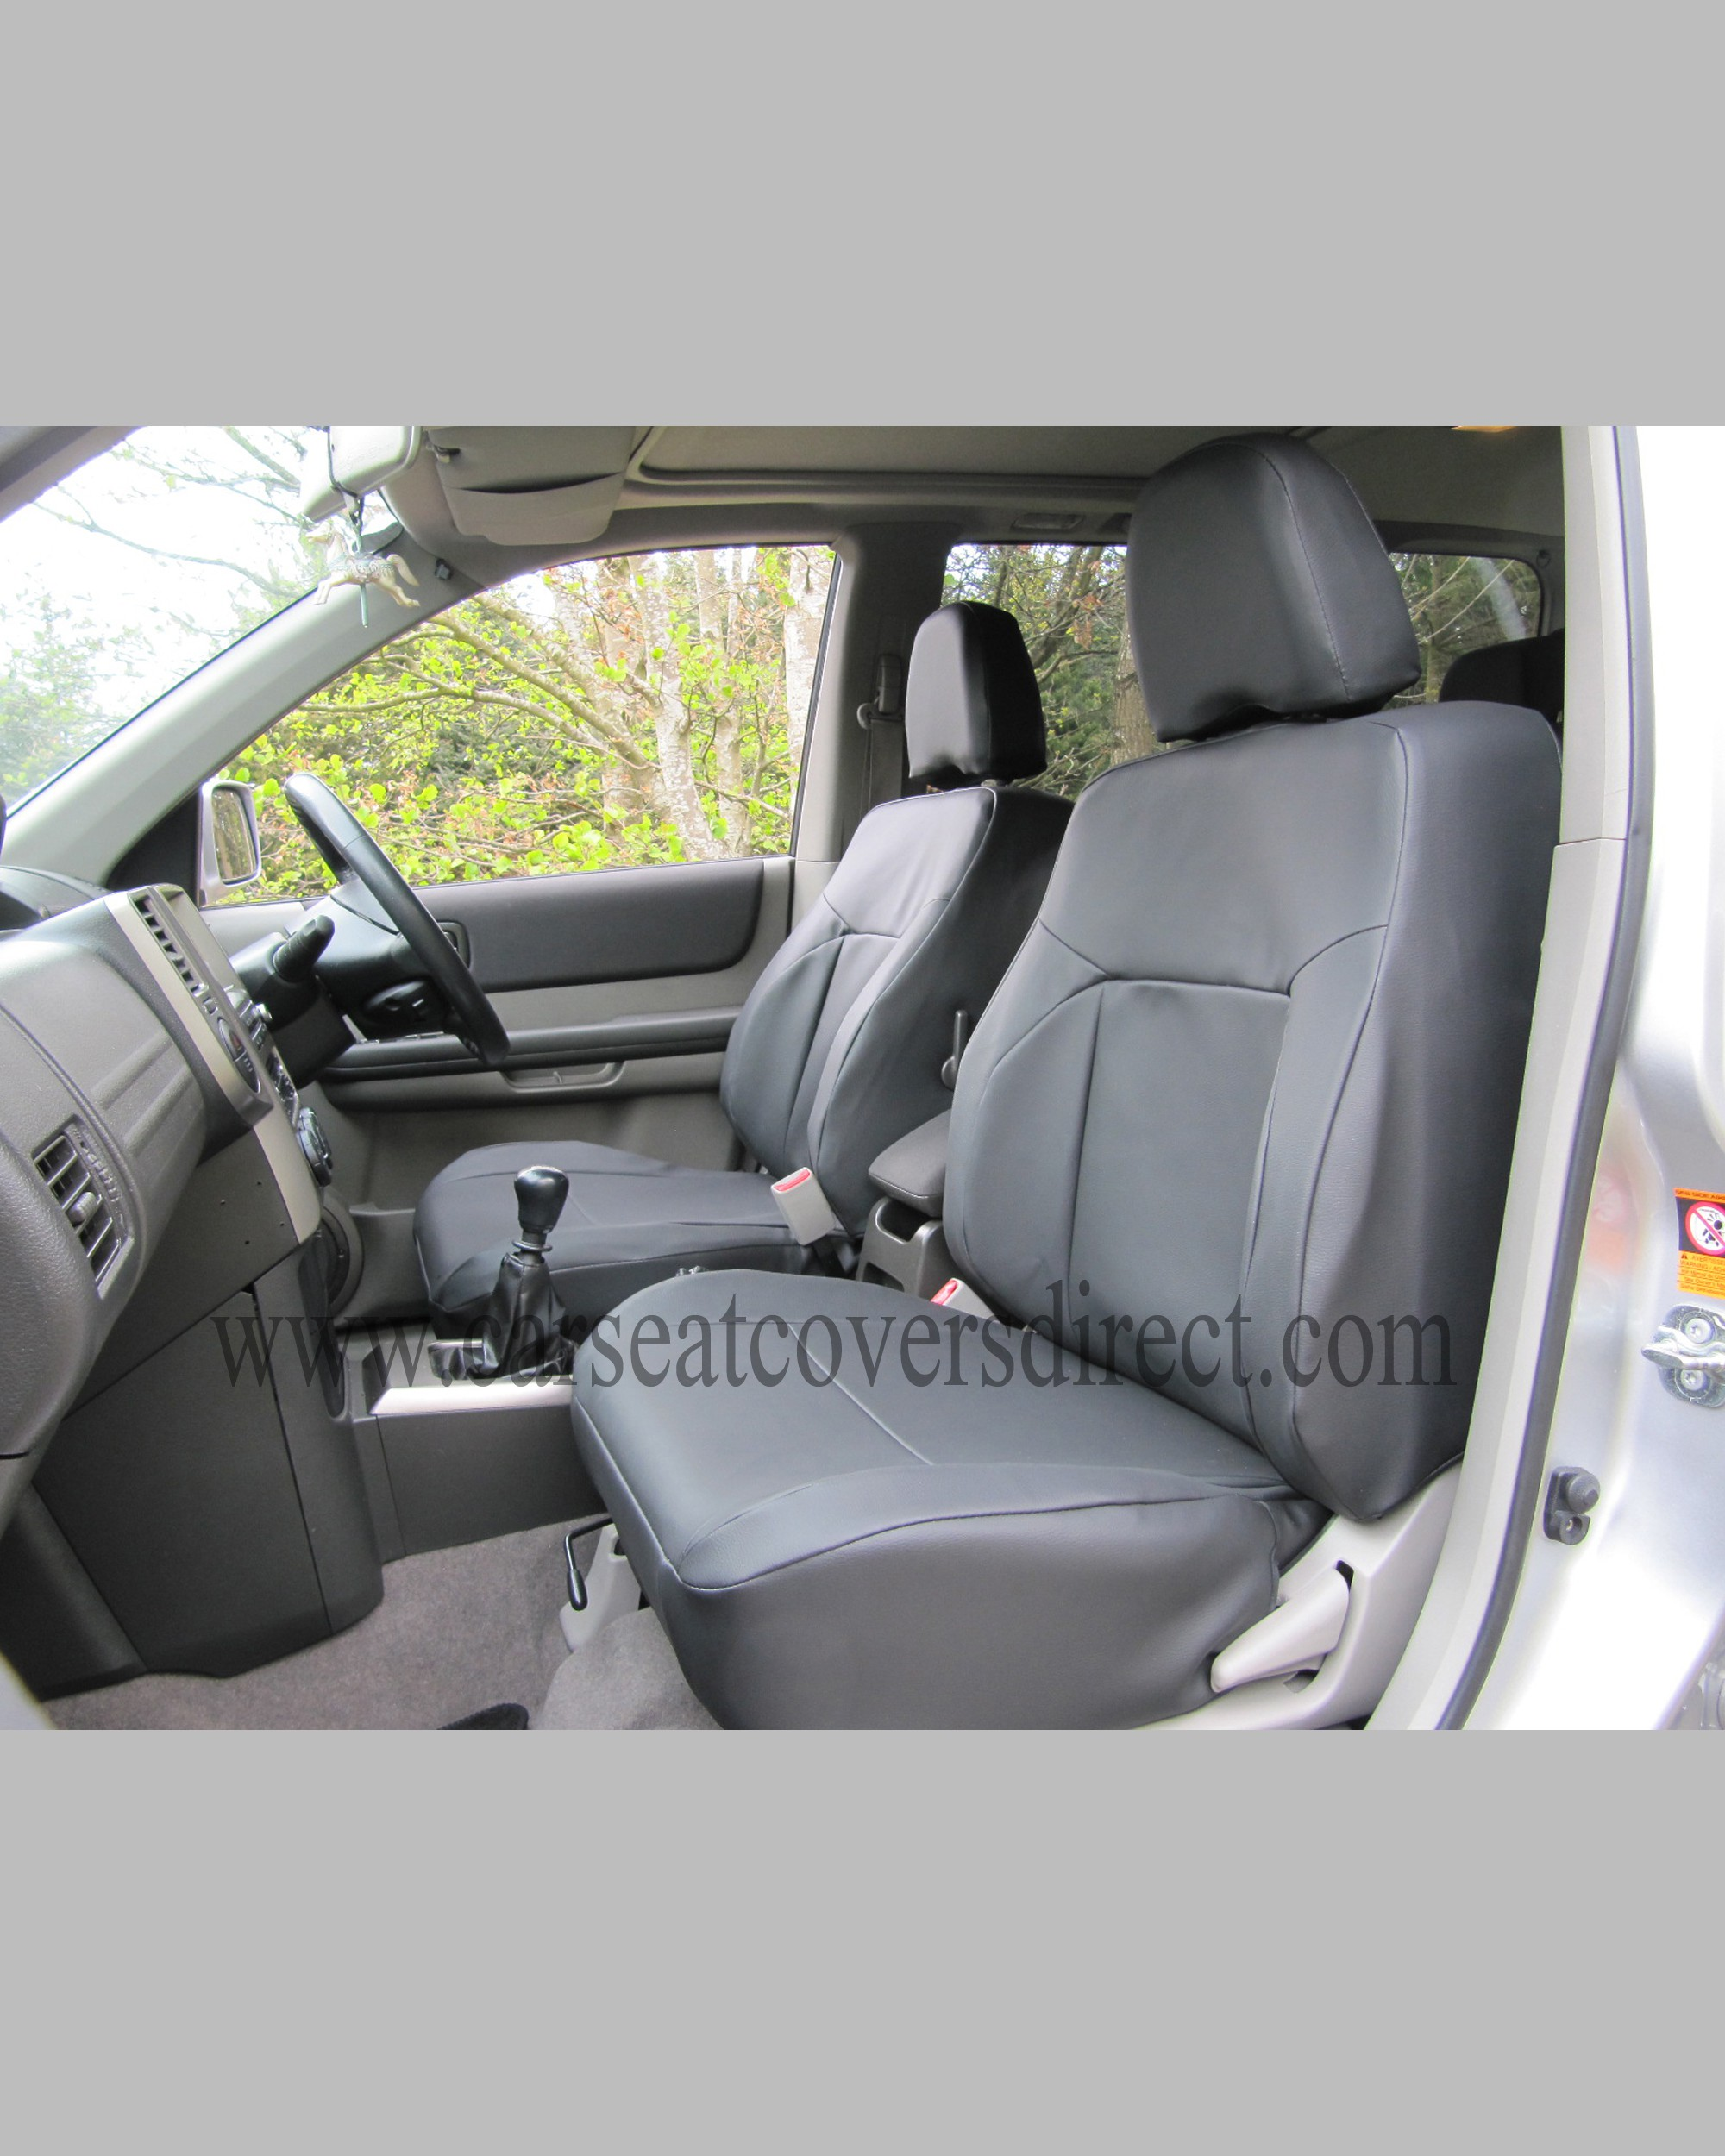 Nissan X Trail Camper >> NISSAN X-TRAIL Black Leatherette Seat Covers - Custom car seat covers - Custom Tailored Seat ...